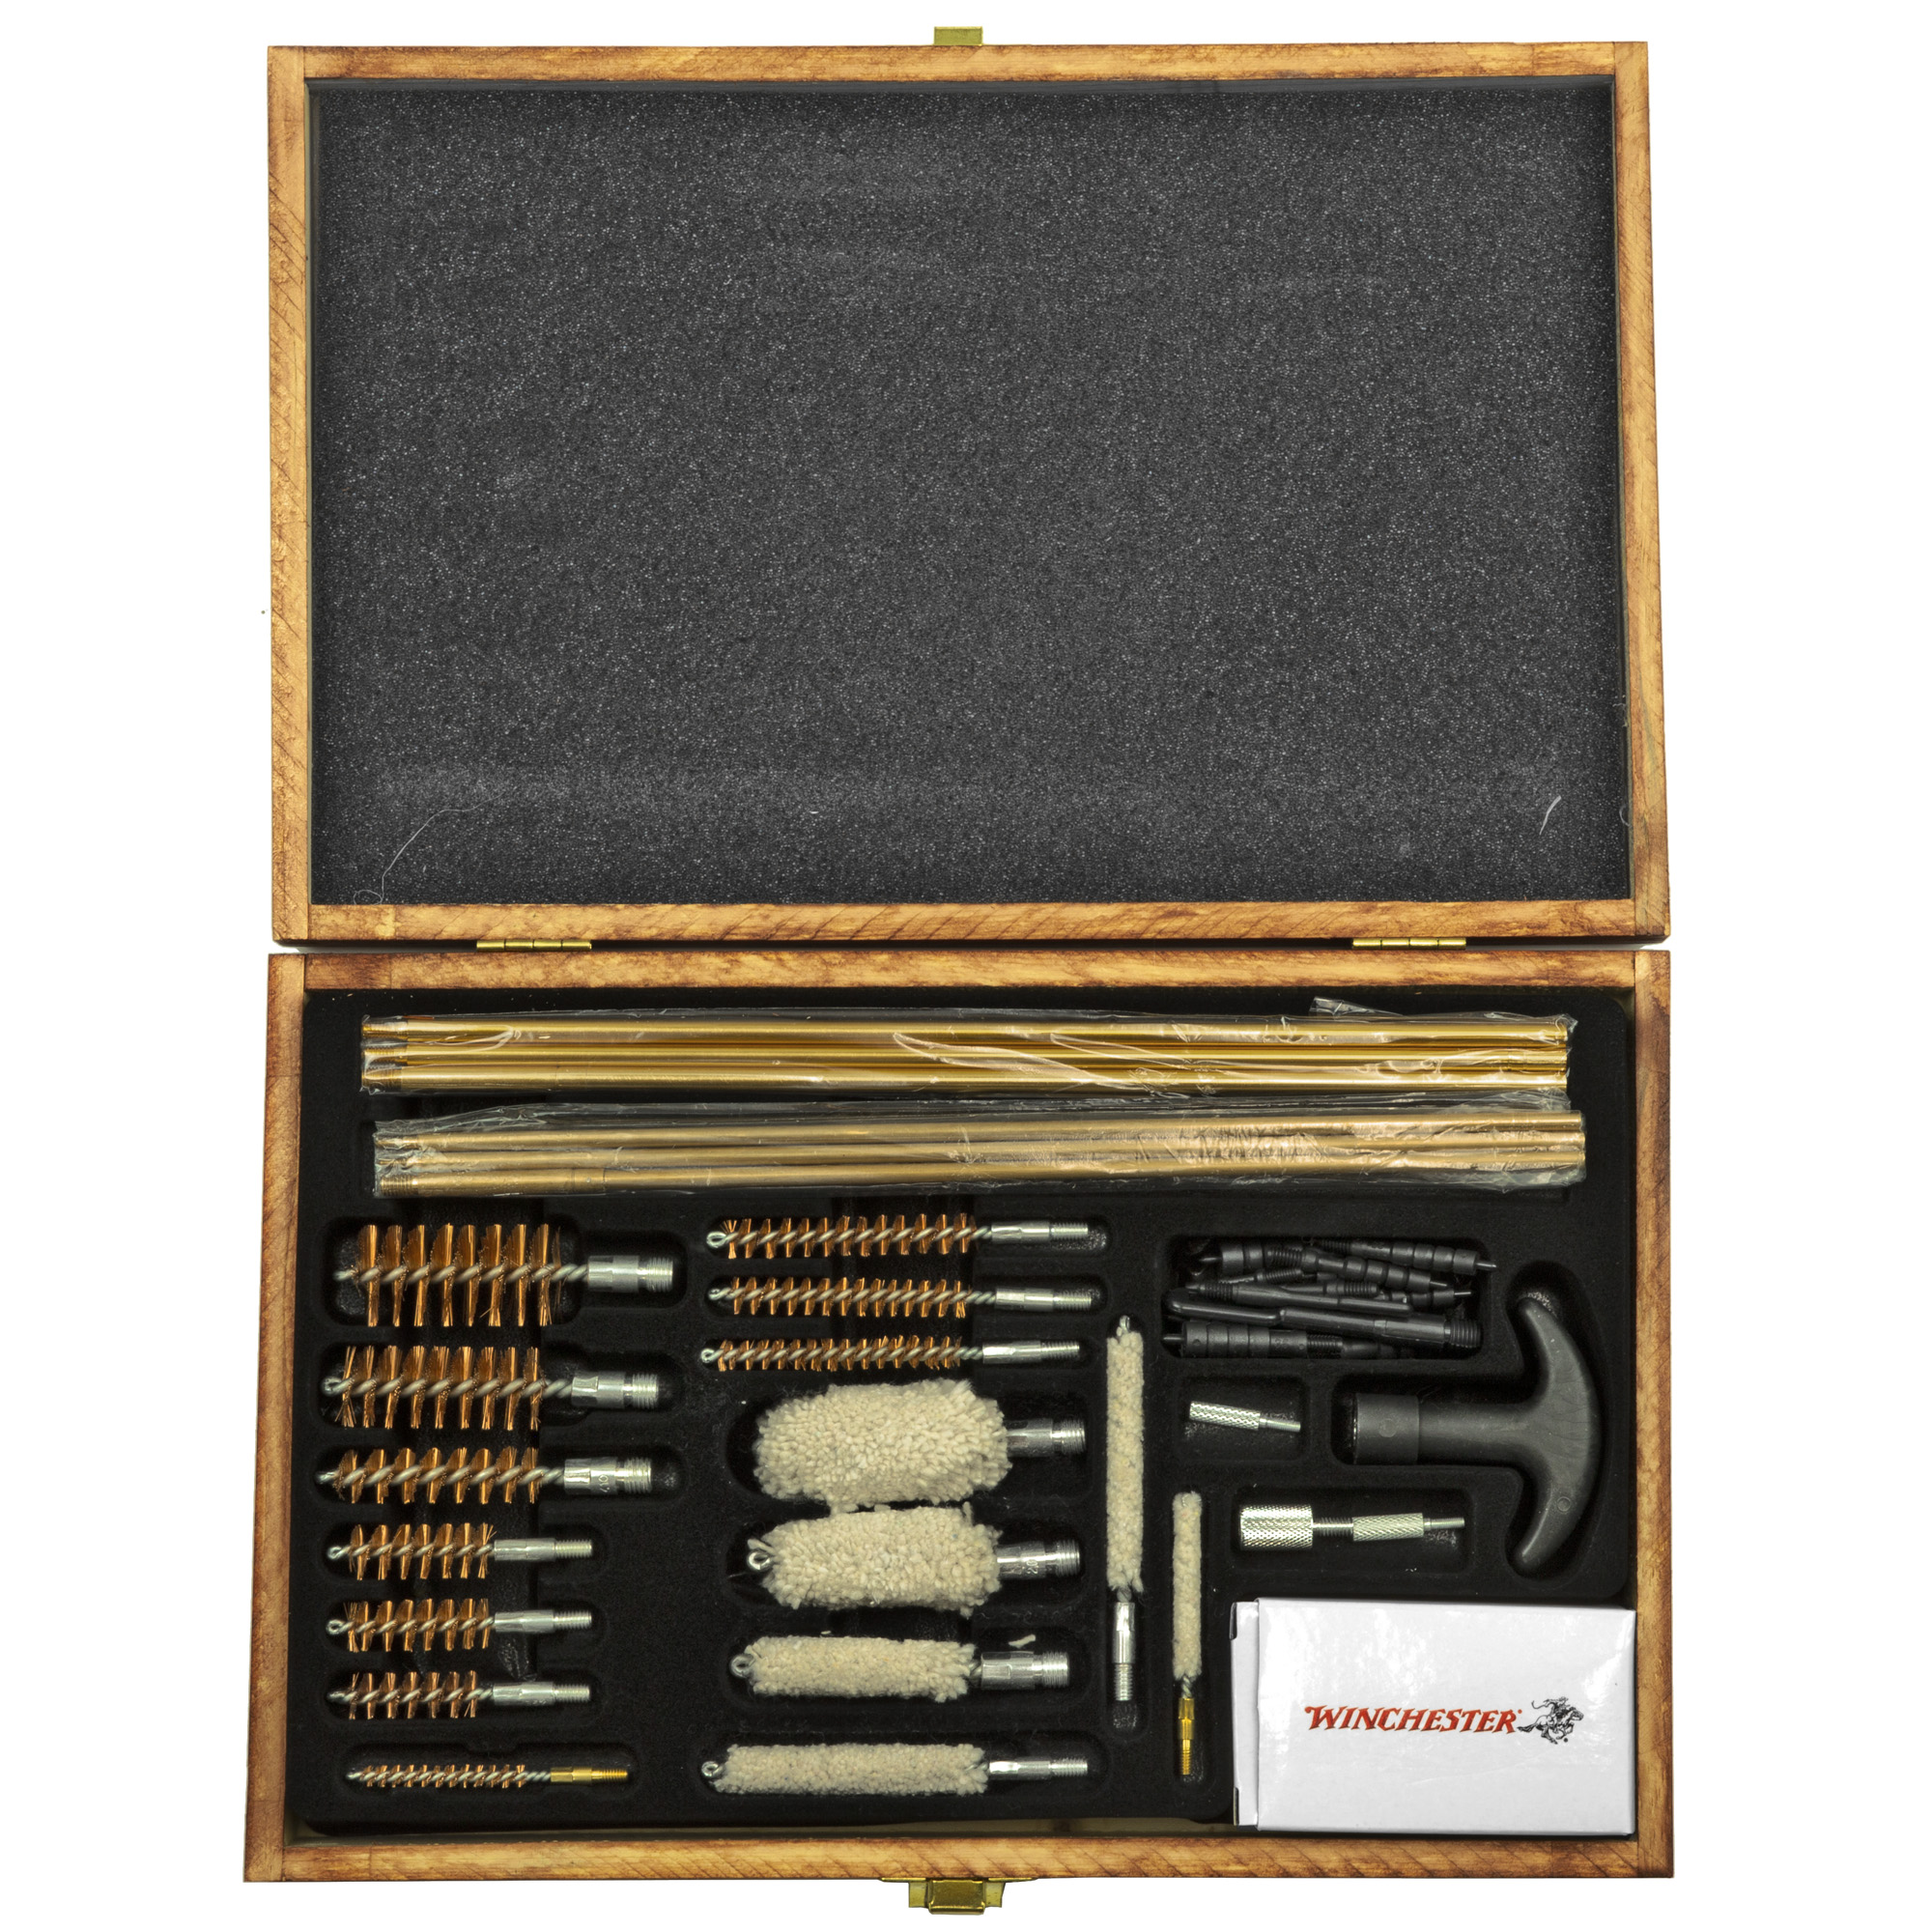 DAC Universal Winchester Cleaning Kit-img-1